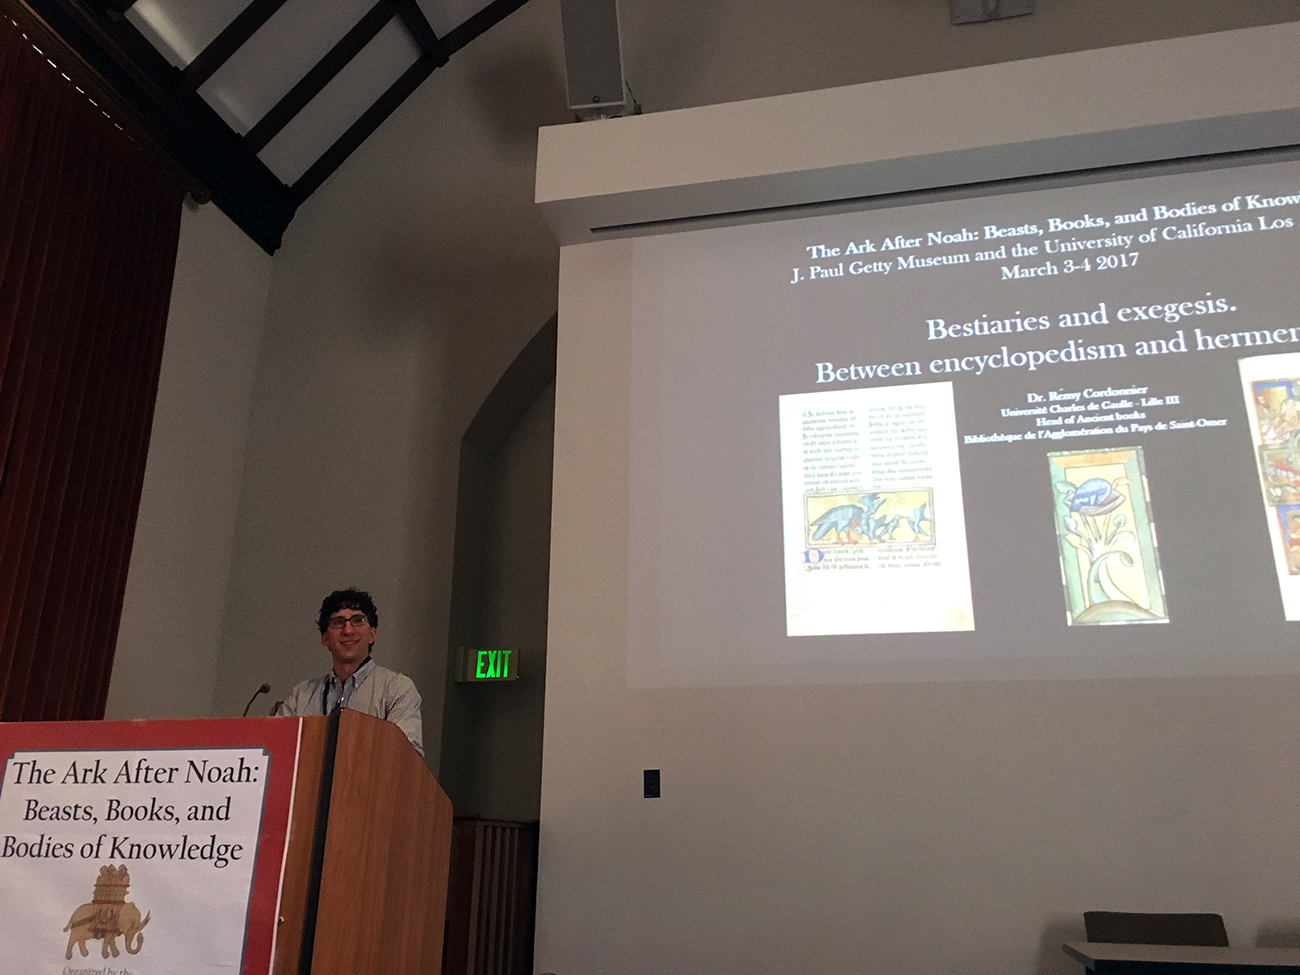 A man speaks, standing at a podium. Behind him, images of medieval illuminated bestiaries